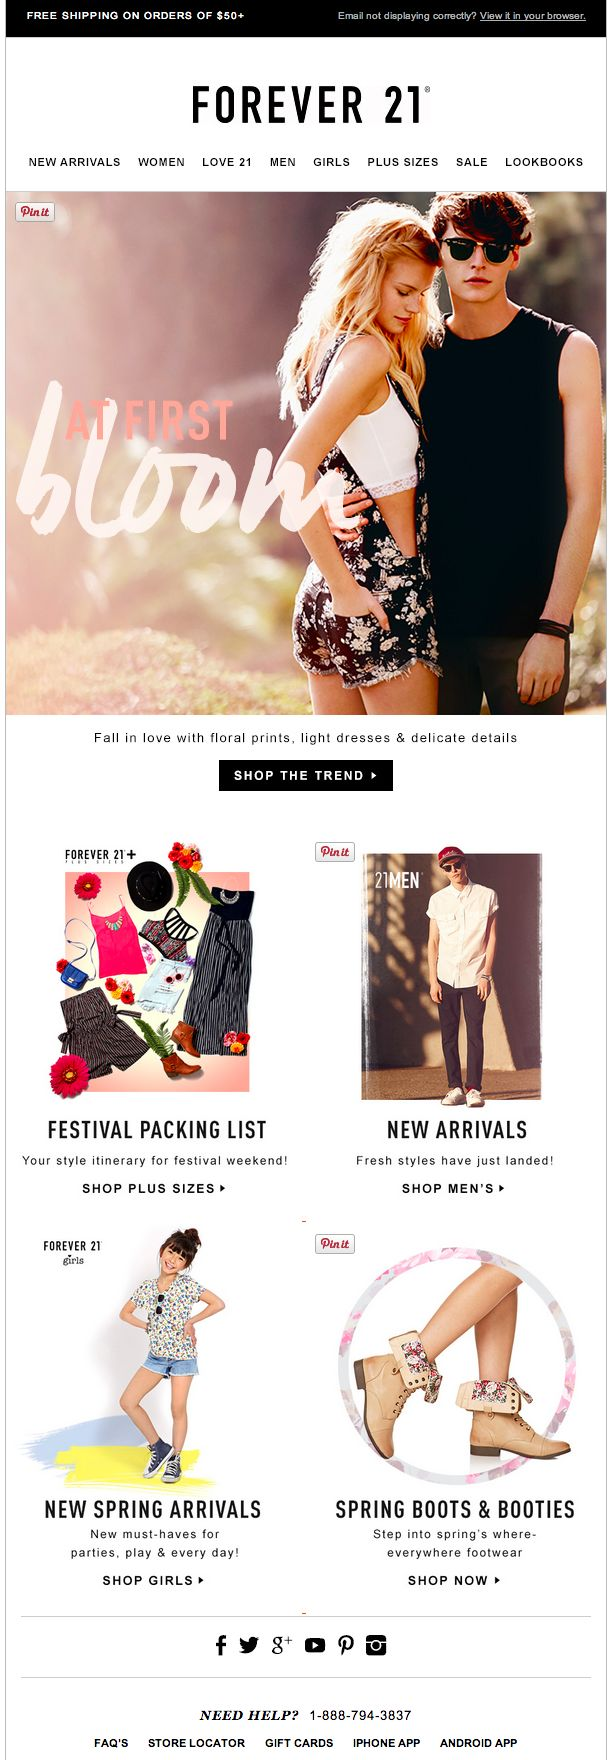 Forever 21 email 2014